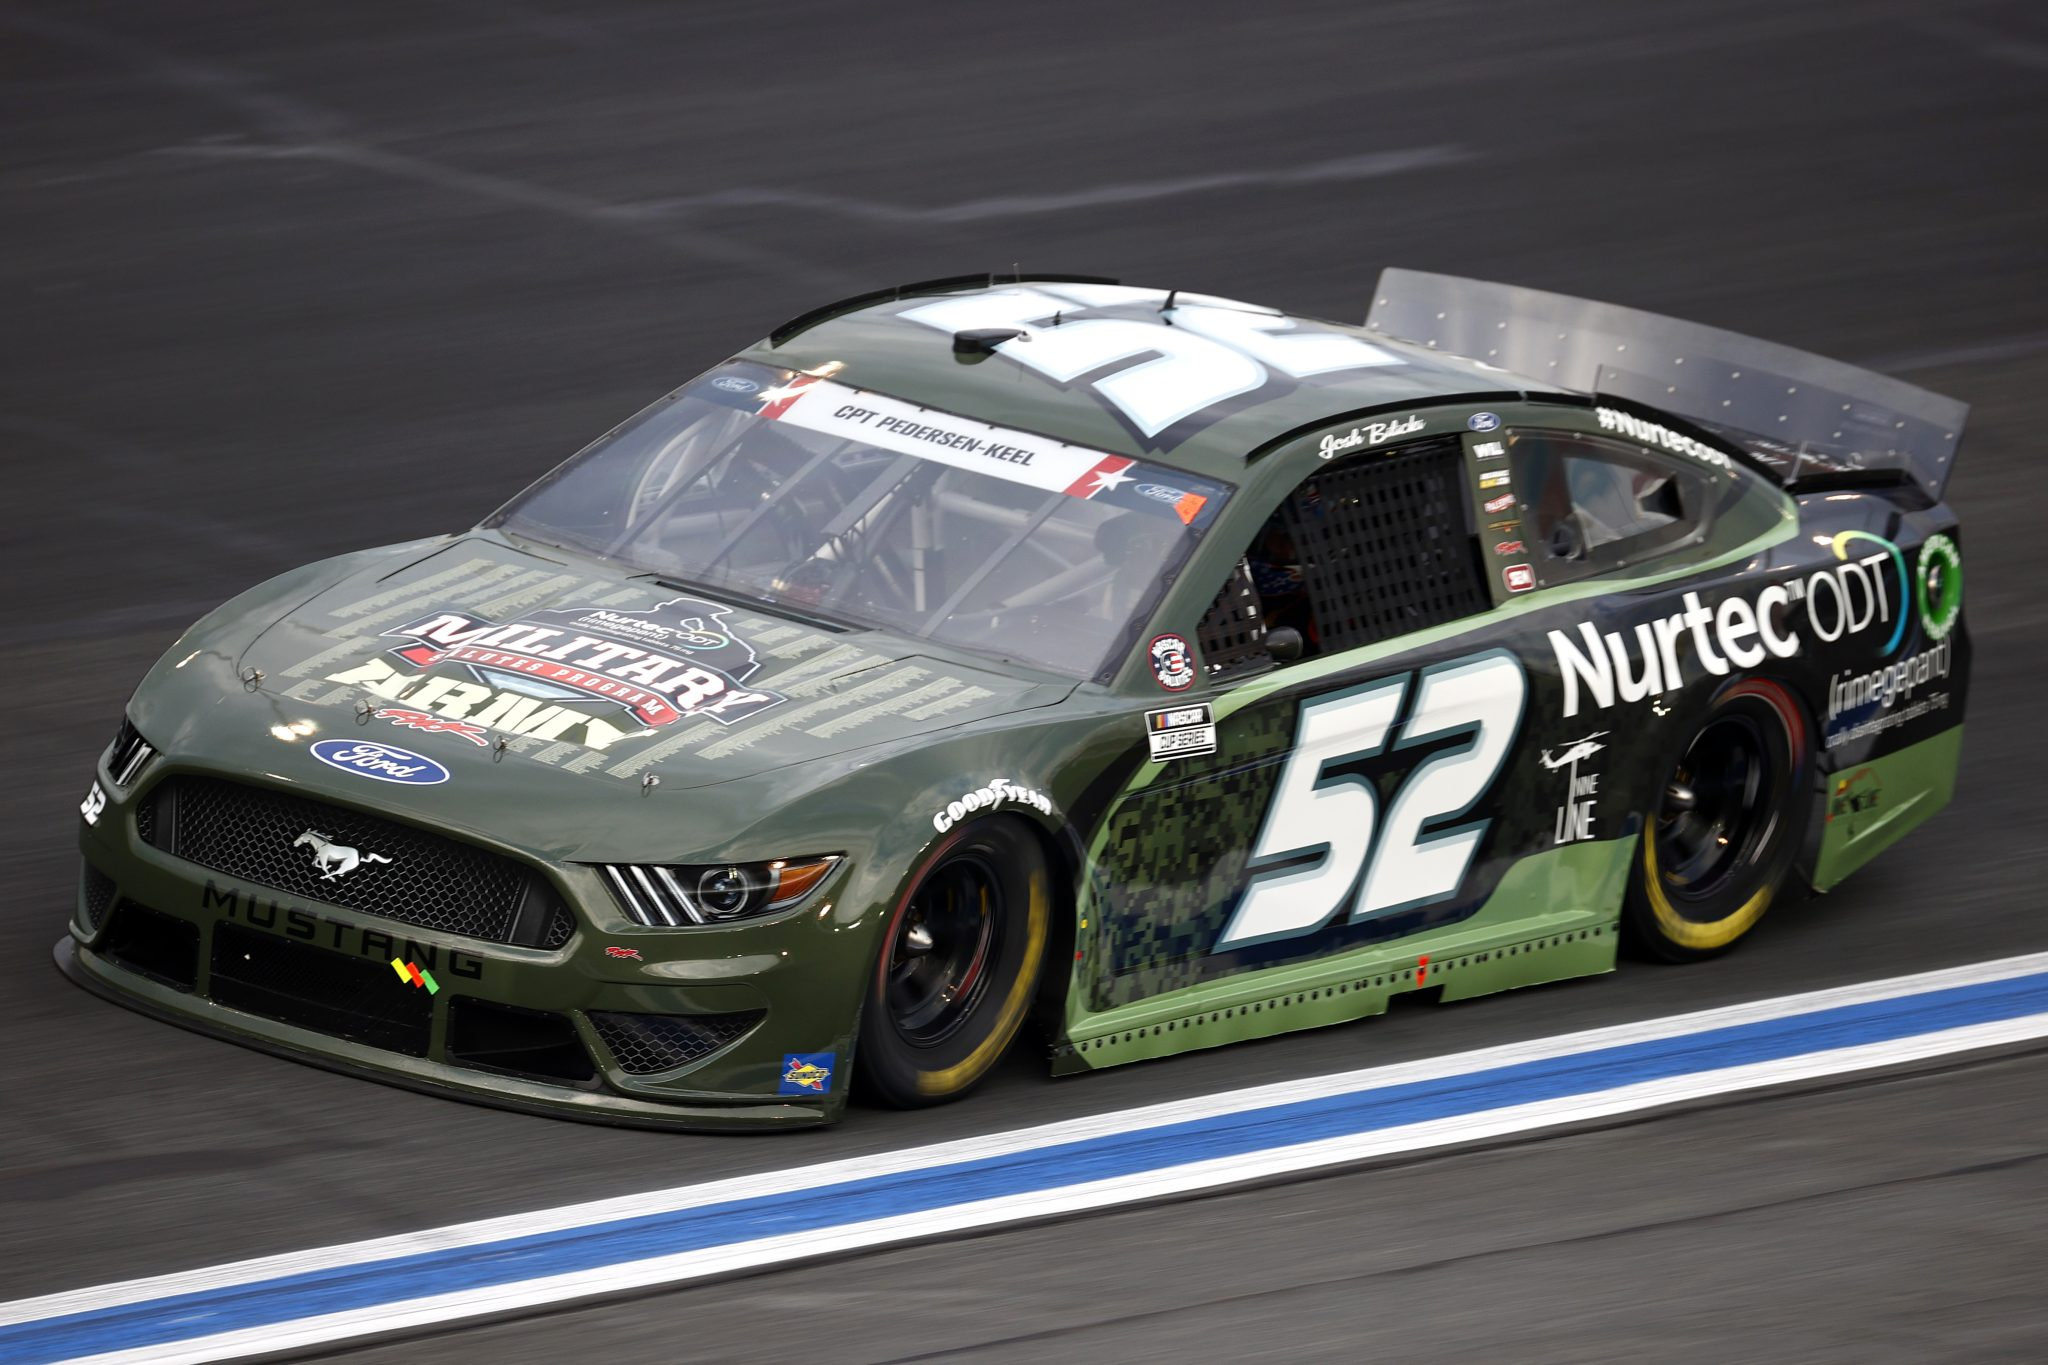 CONCORD, NORTH CAROLINA - MAY 28: Josh Bilicki, driver of the #52 US Army Military Salutes Ford, drives during practice for the NASCAR Cup Series Coca-Cola 600 at Charlotte Motor Speedway on May 28, 2021 in Concord, North Carolina. (Photo by Jared C. Tilton/Getty Images) | Getty Images